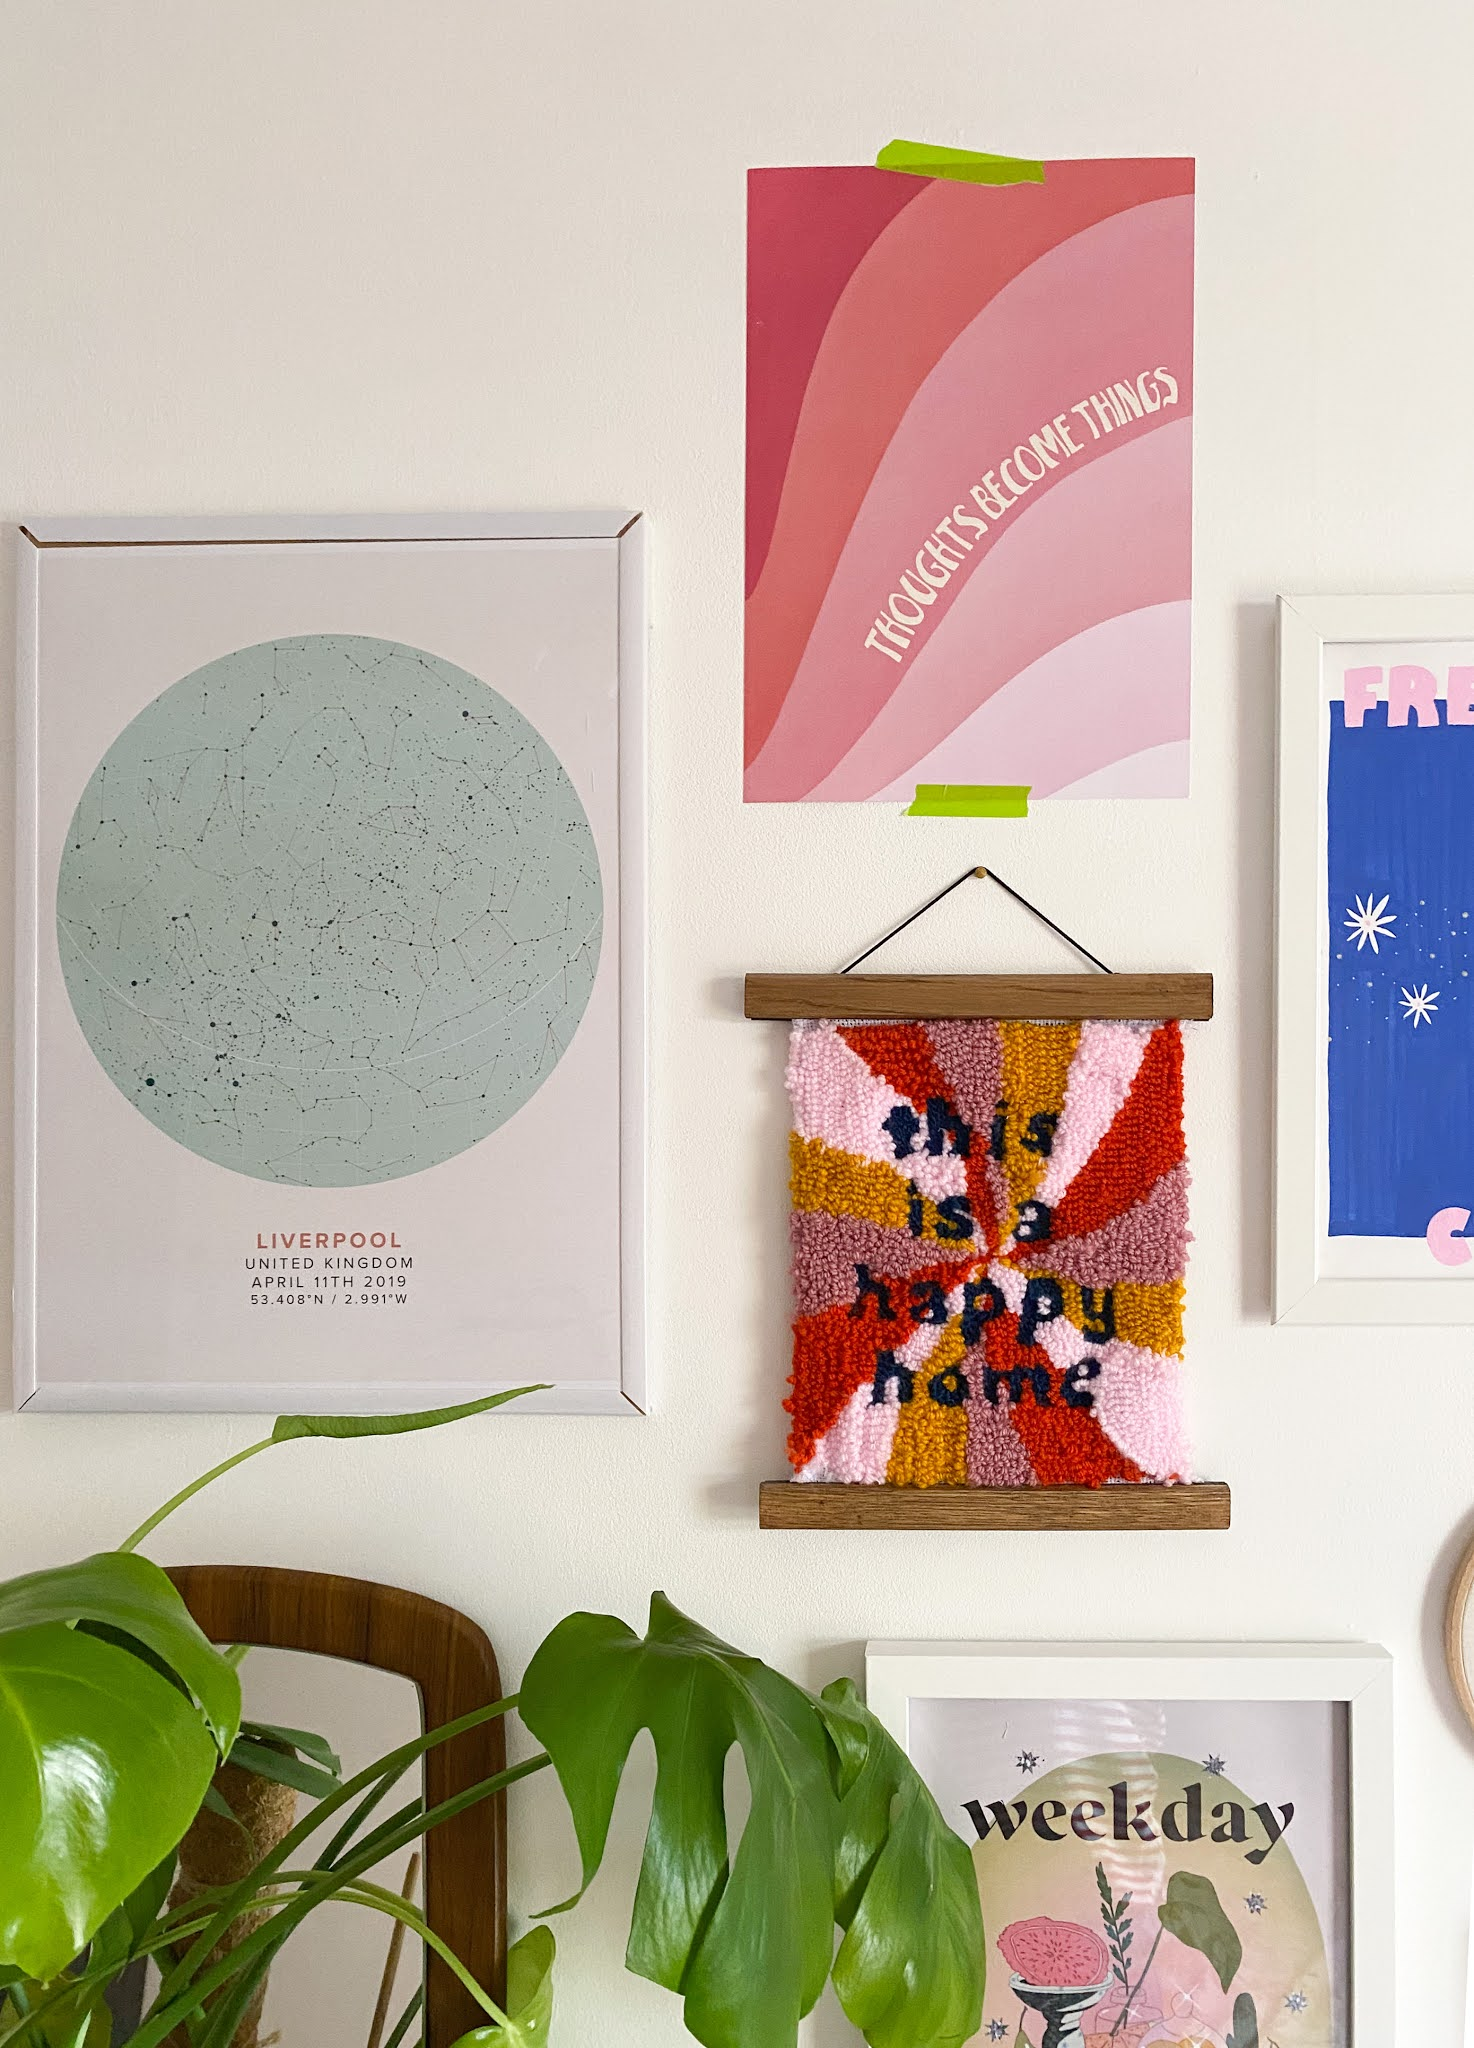 """personalised 'stars on the day we met' print from mapiful, allie Josie studio 70s style punch needle """"this is a happy home"""" wall hanging, 70s style groovy pink print reading """"thoughts become things"""""""